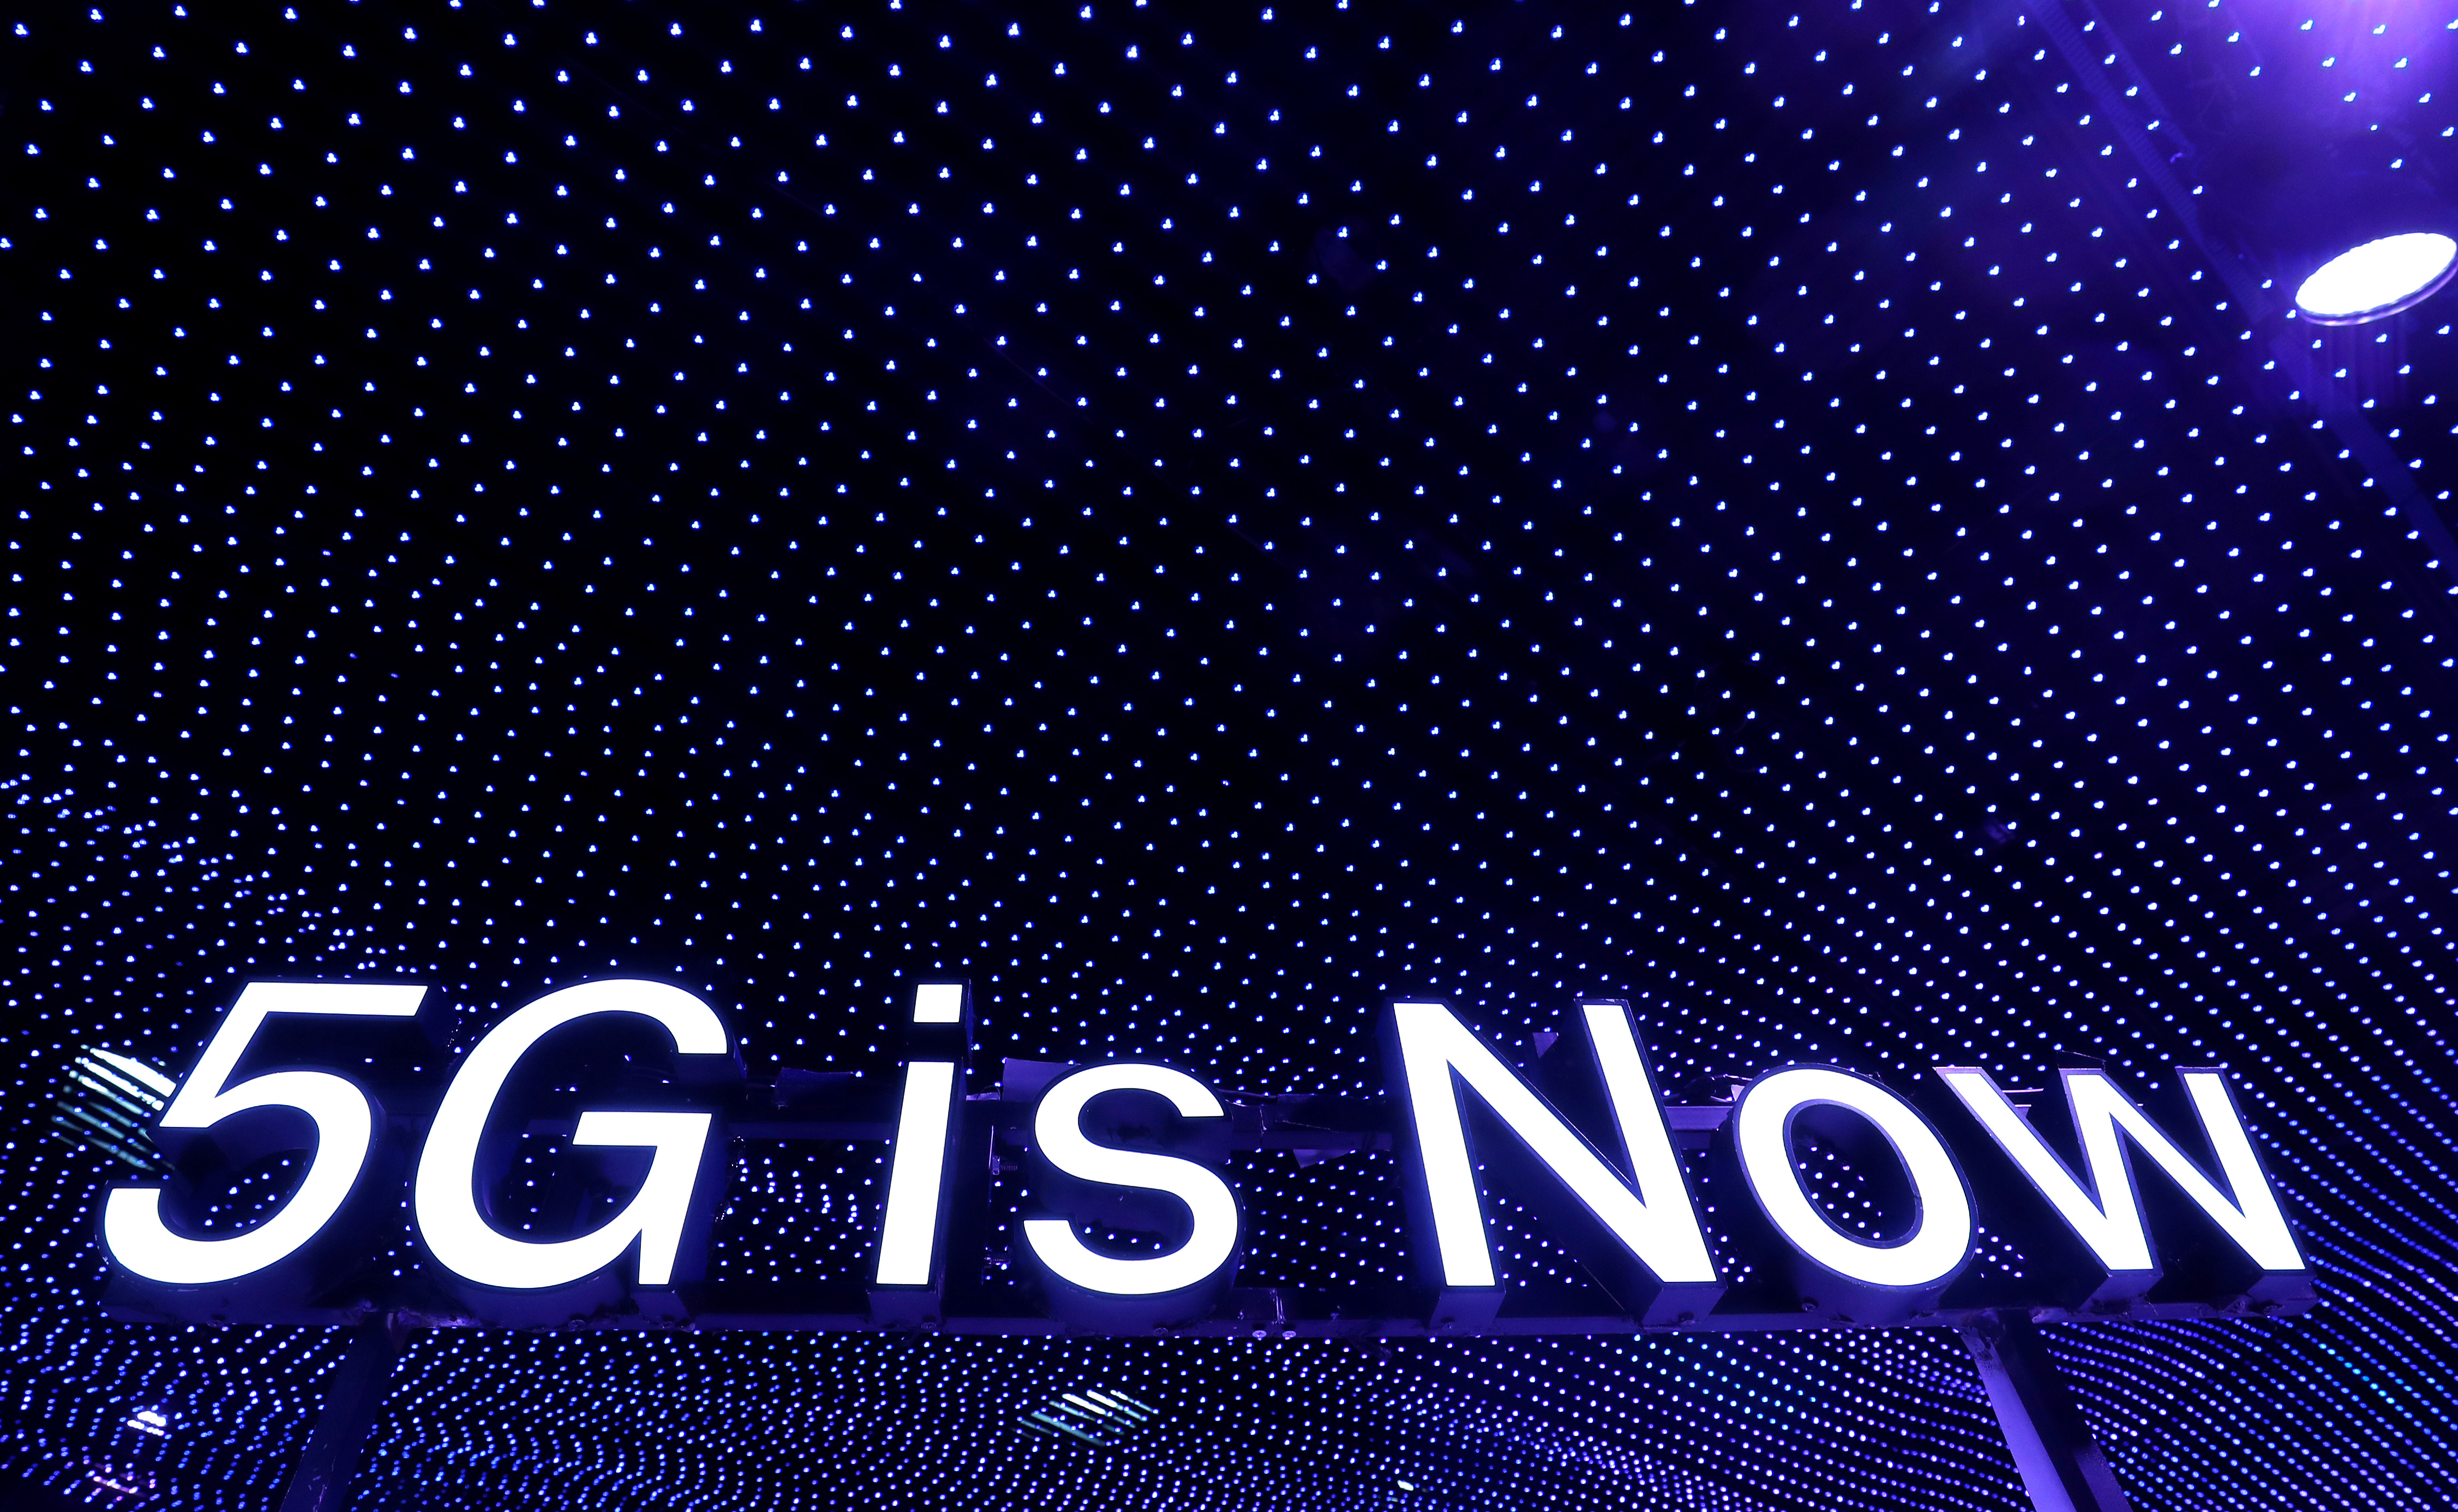 Explainer: What is 5G and who are the major players? | The